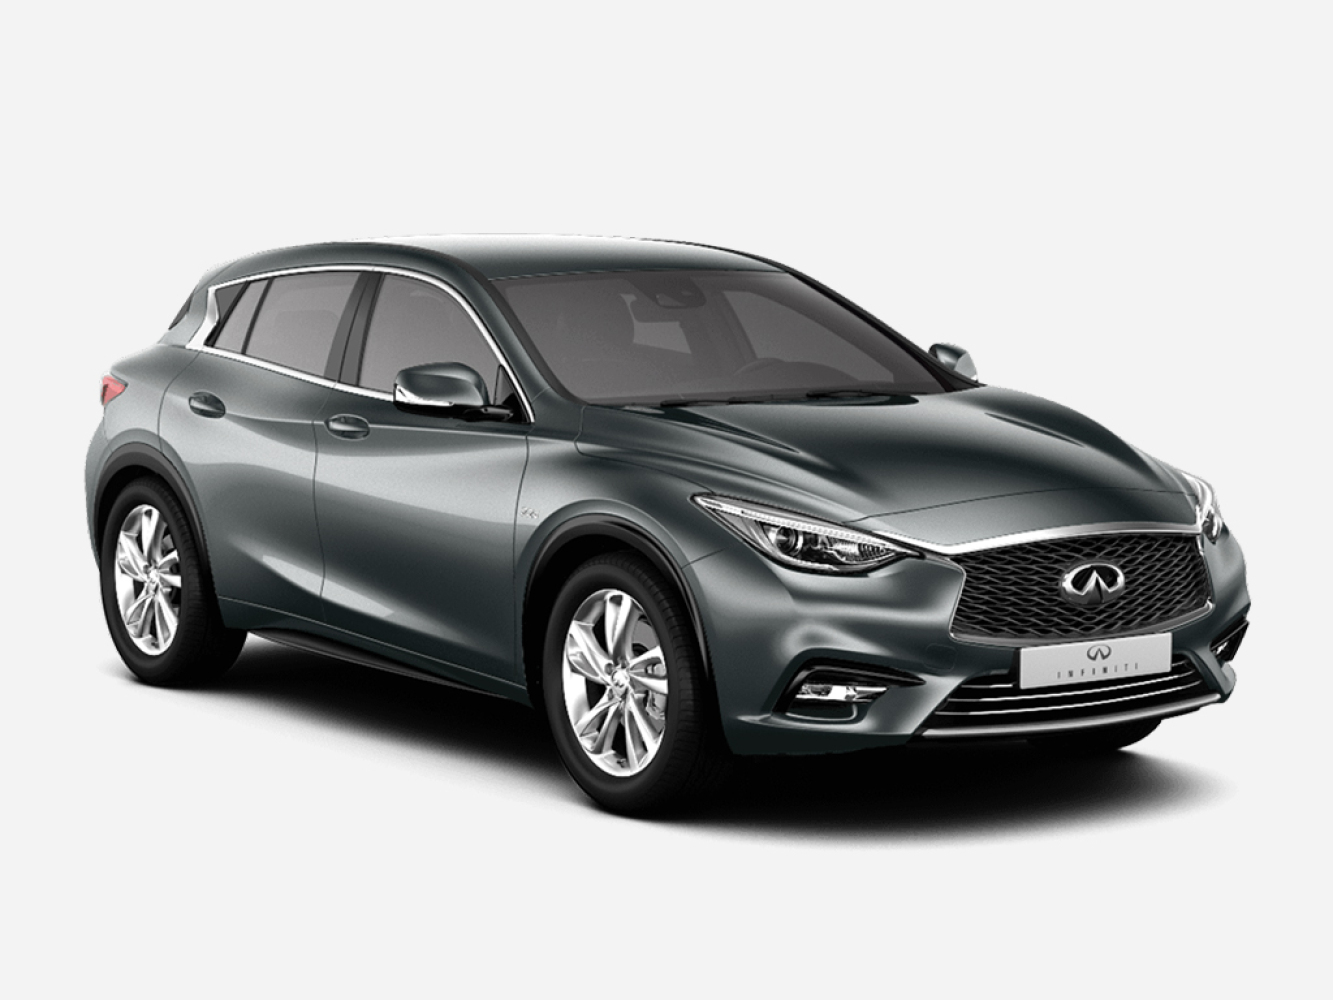 new infiniti q30 1 5d se 5dr diesel hatchback for sale. Black Bedroom Furniture Sets. Home Design Ideas